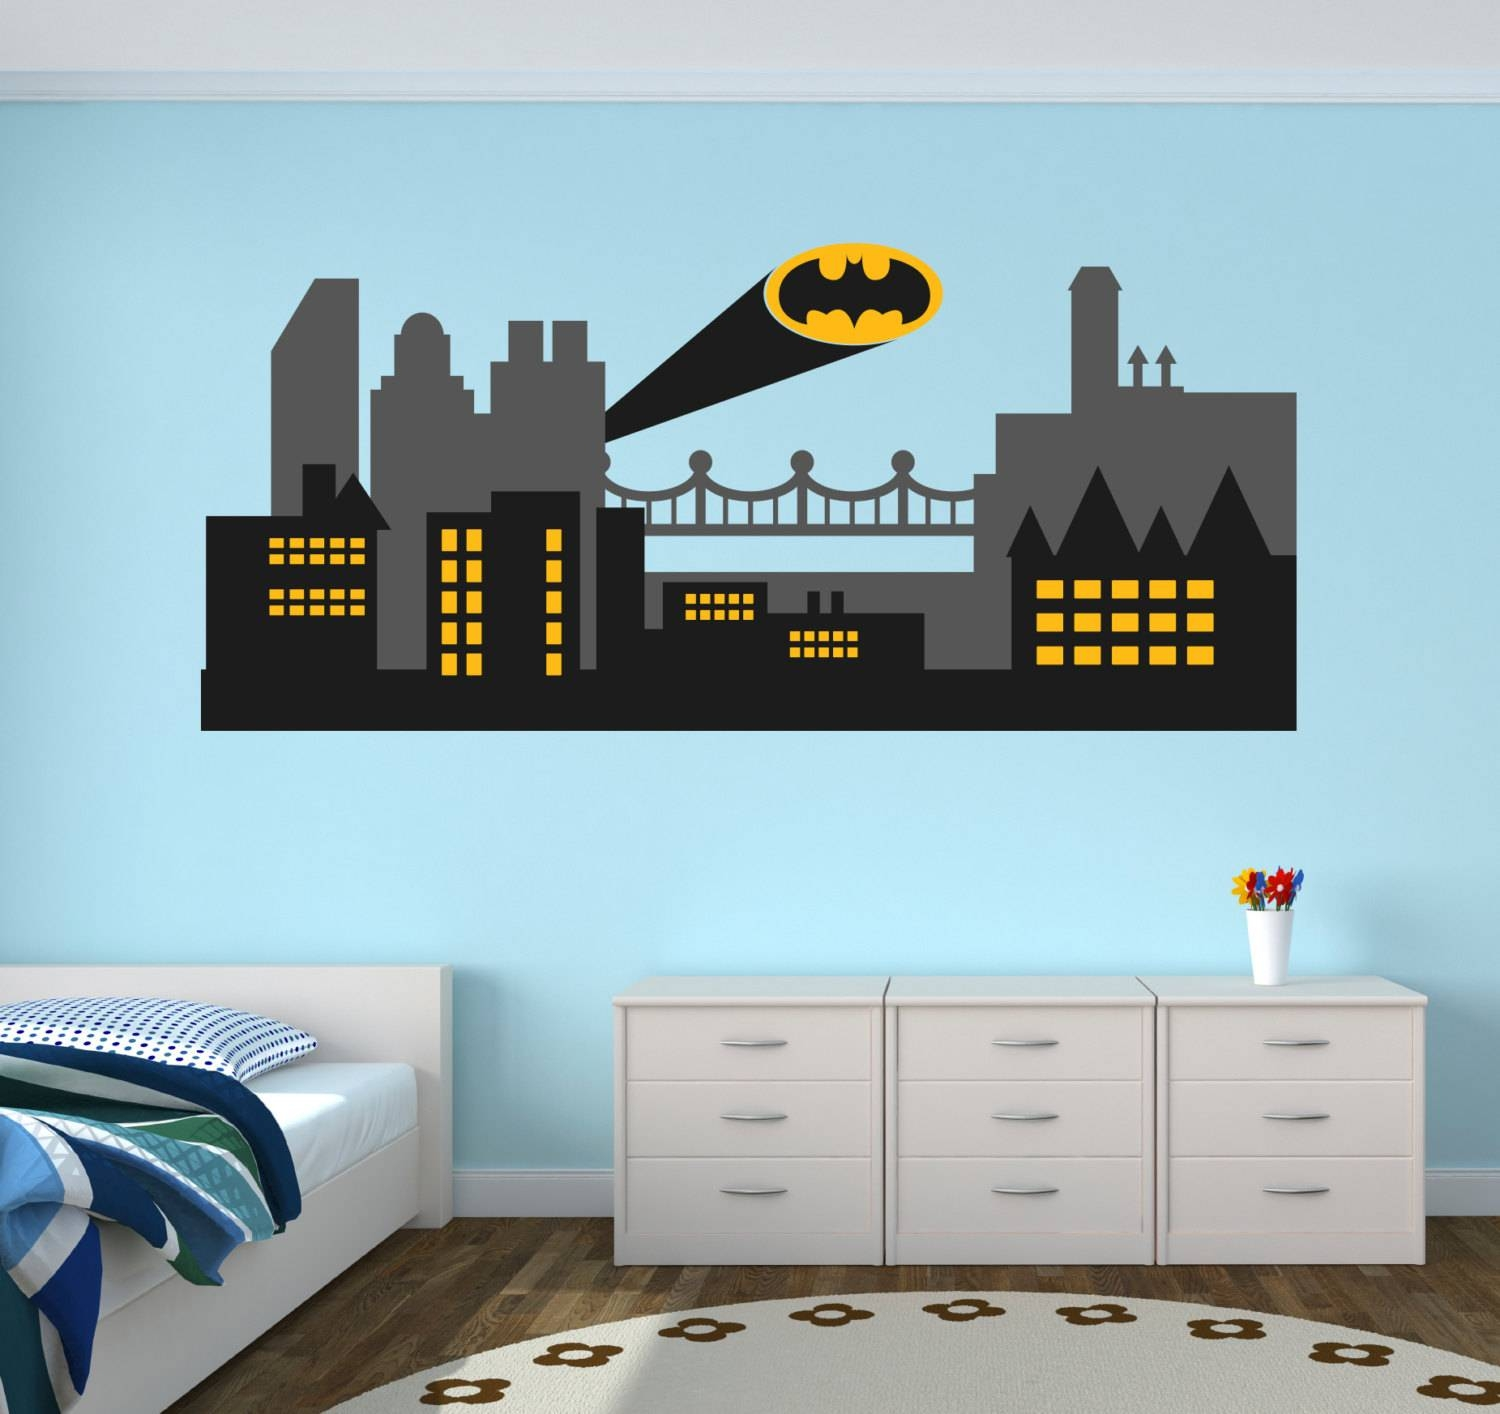 Gothic City Wall Decal Batman Gothic City Skyline Wall Art In Best And Newest Superhero Wall Art For Kids (View 6 of 25)